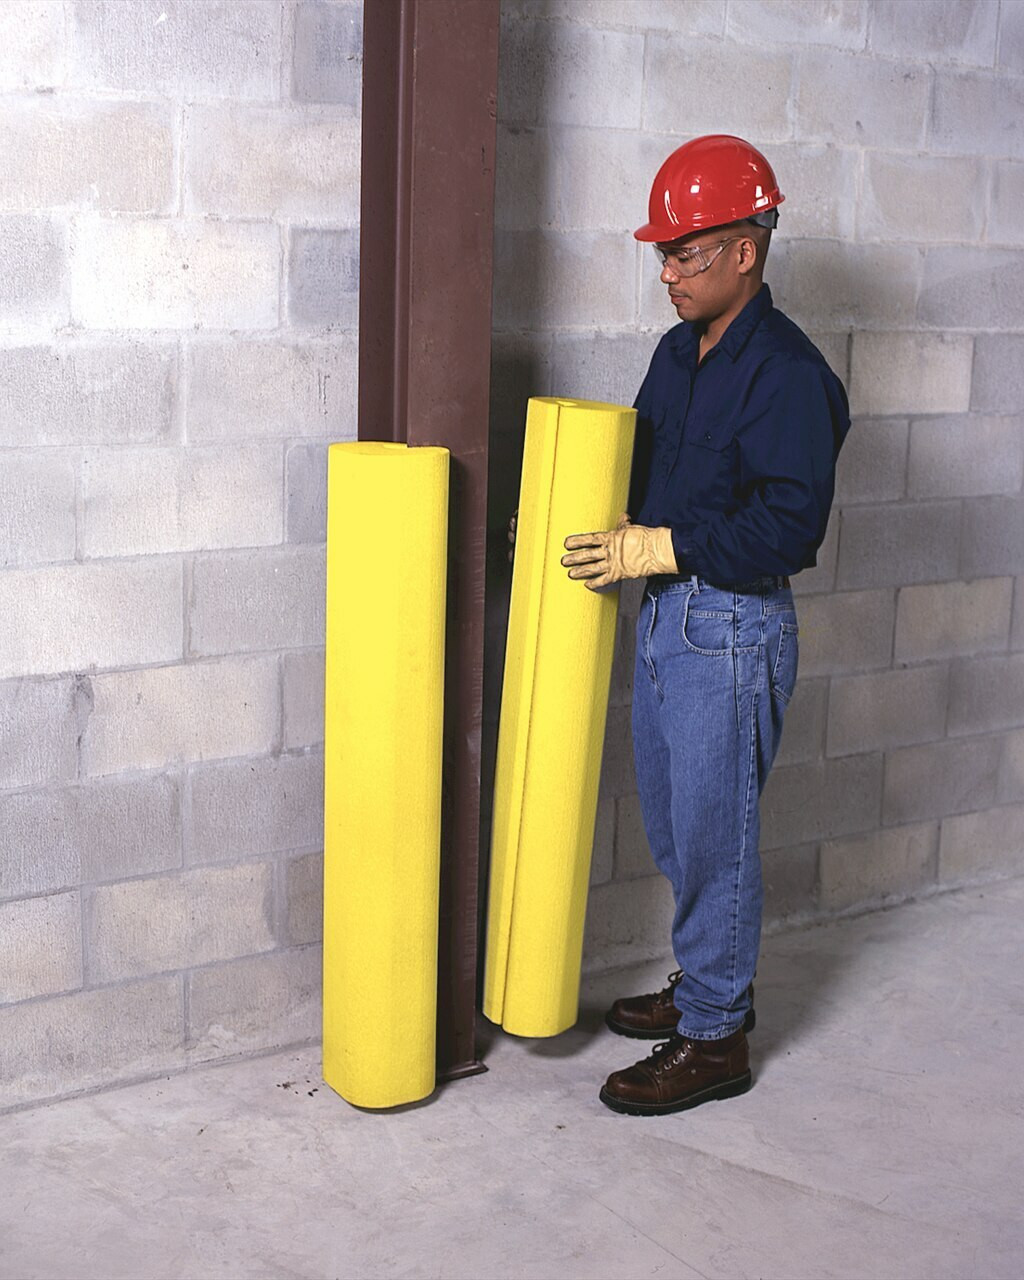 Specials - Facility Products